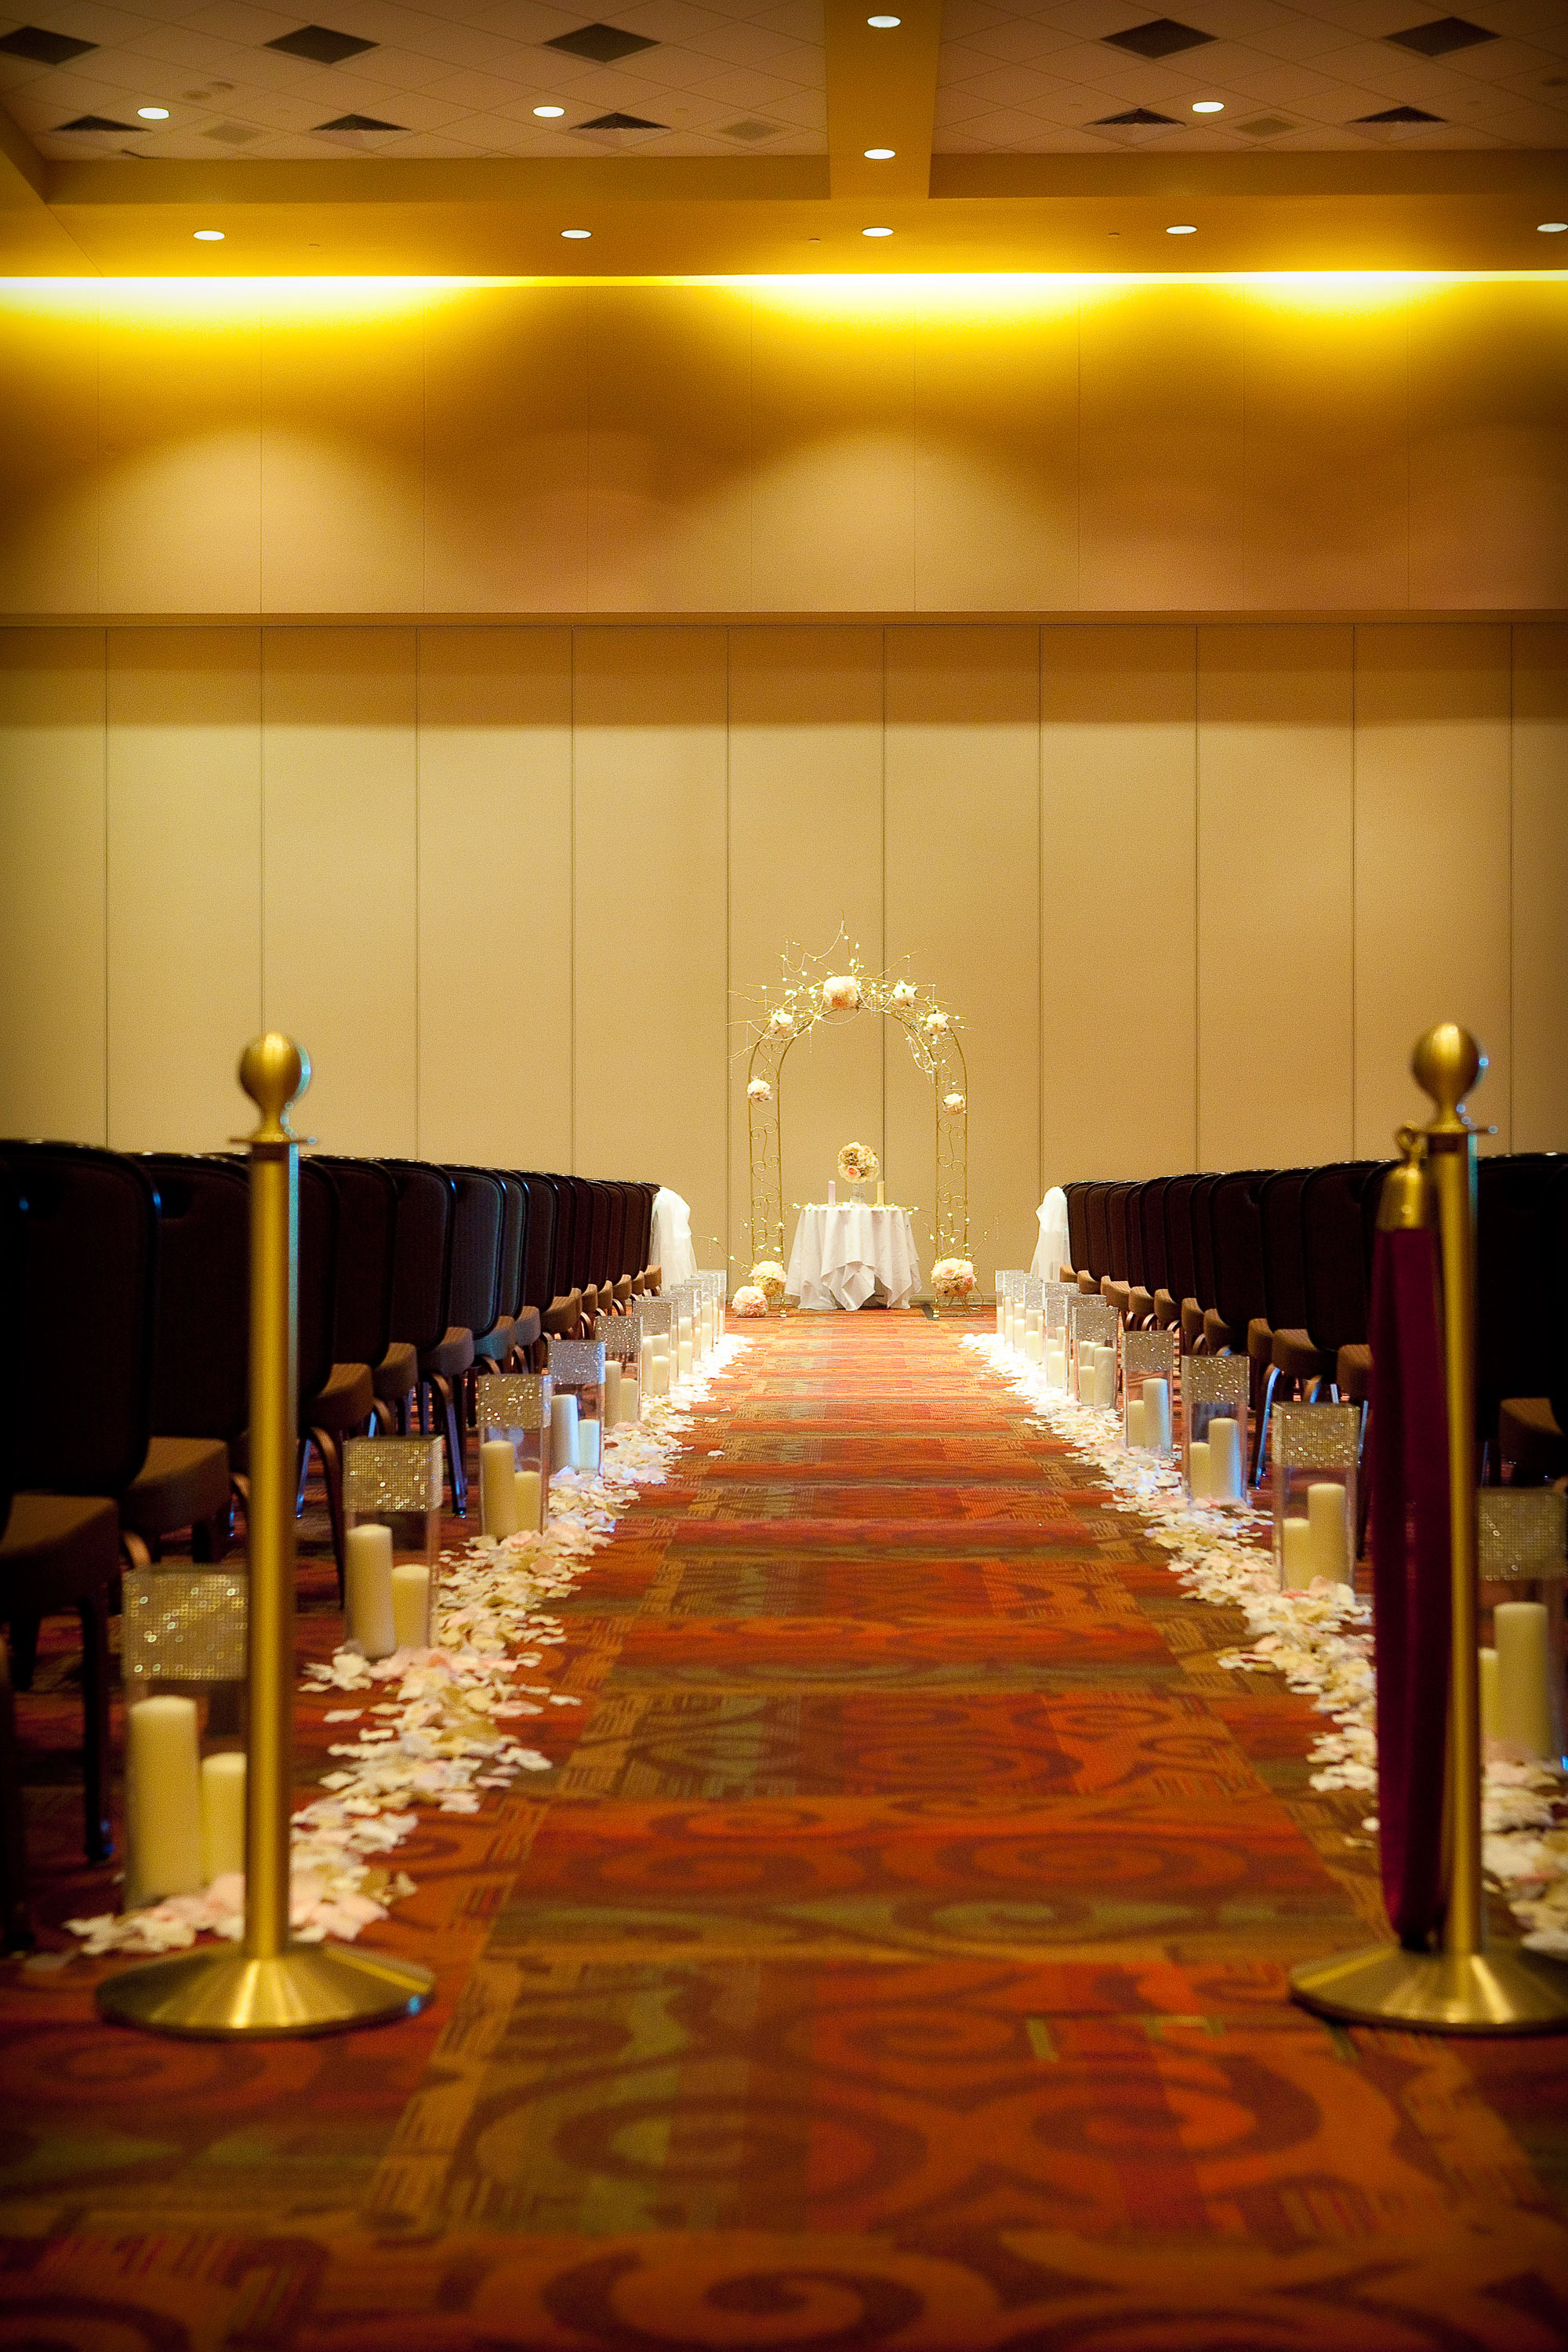 illuminarts wedding photography - Sky Ute Casino